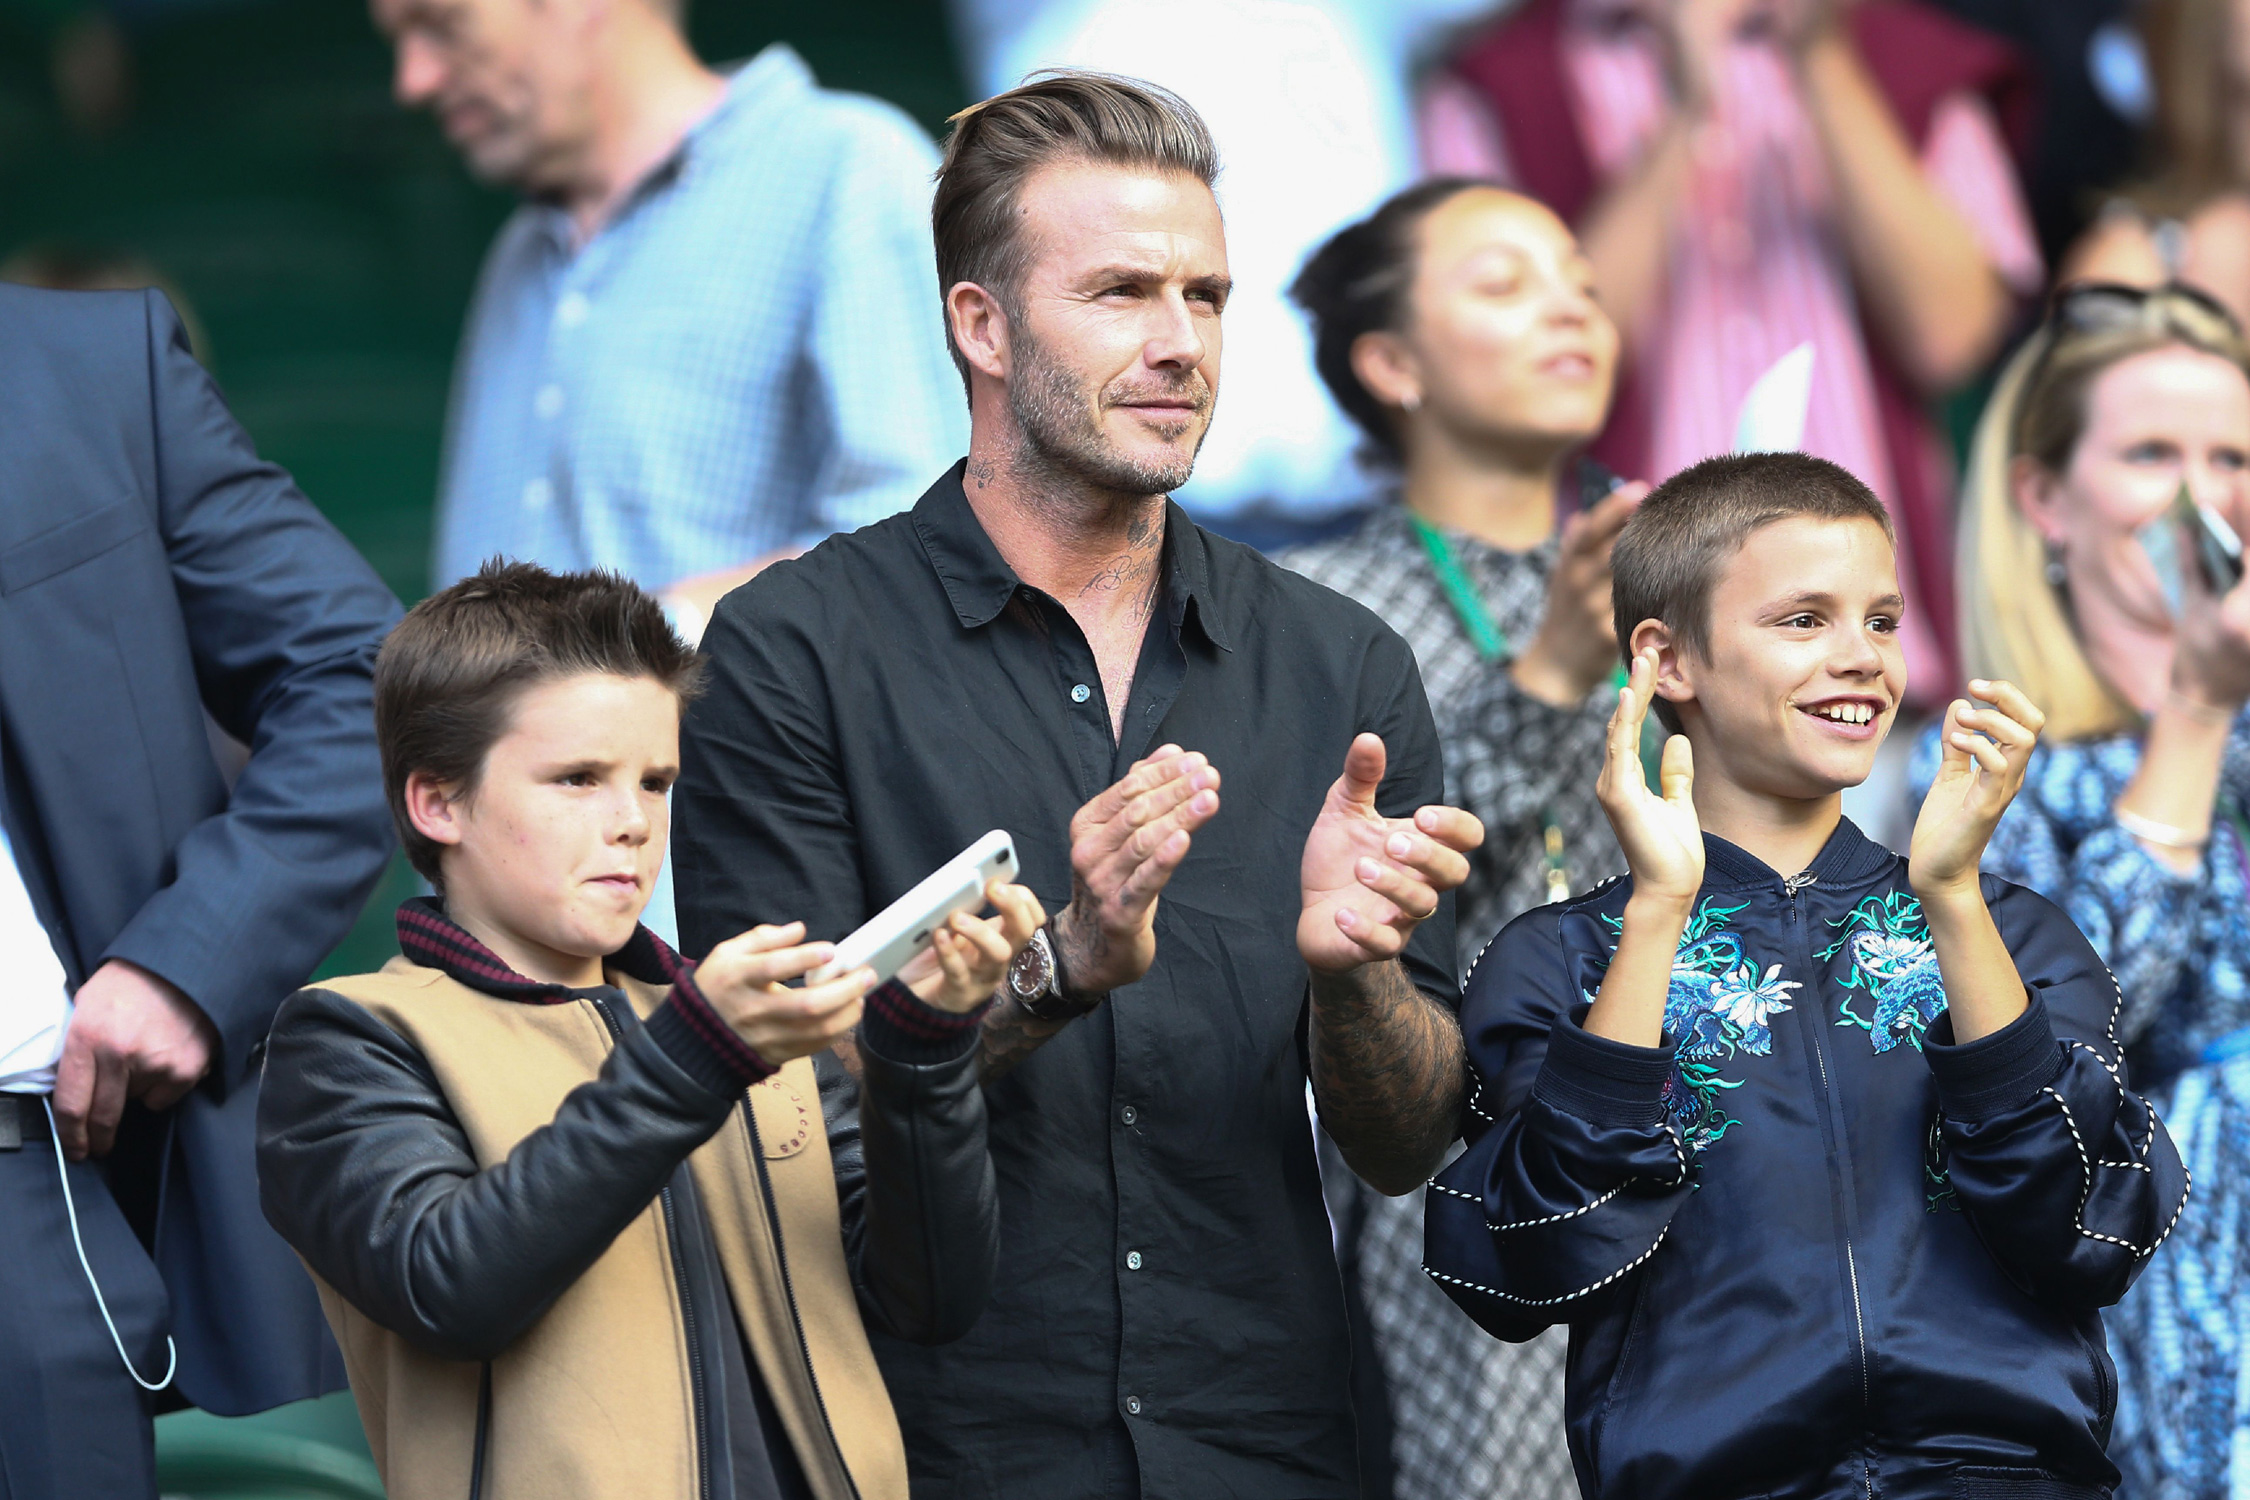 Beckham takes in one of Roger Federer's matches at Wimbledon 2016 with his sons Cruz and Romeo.